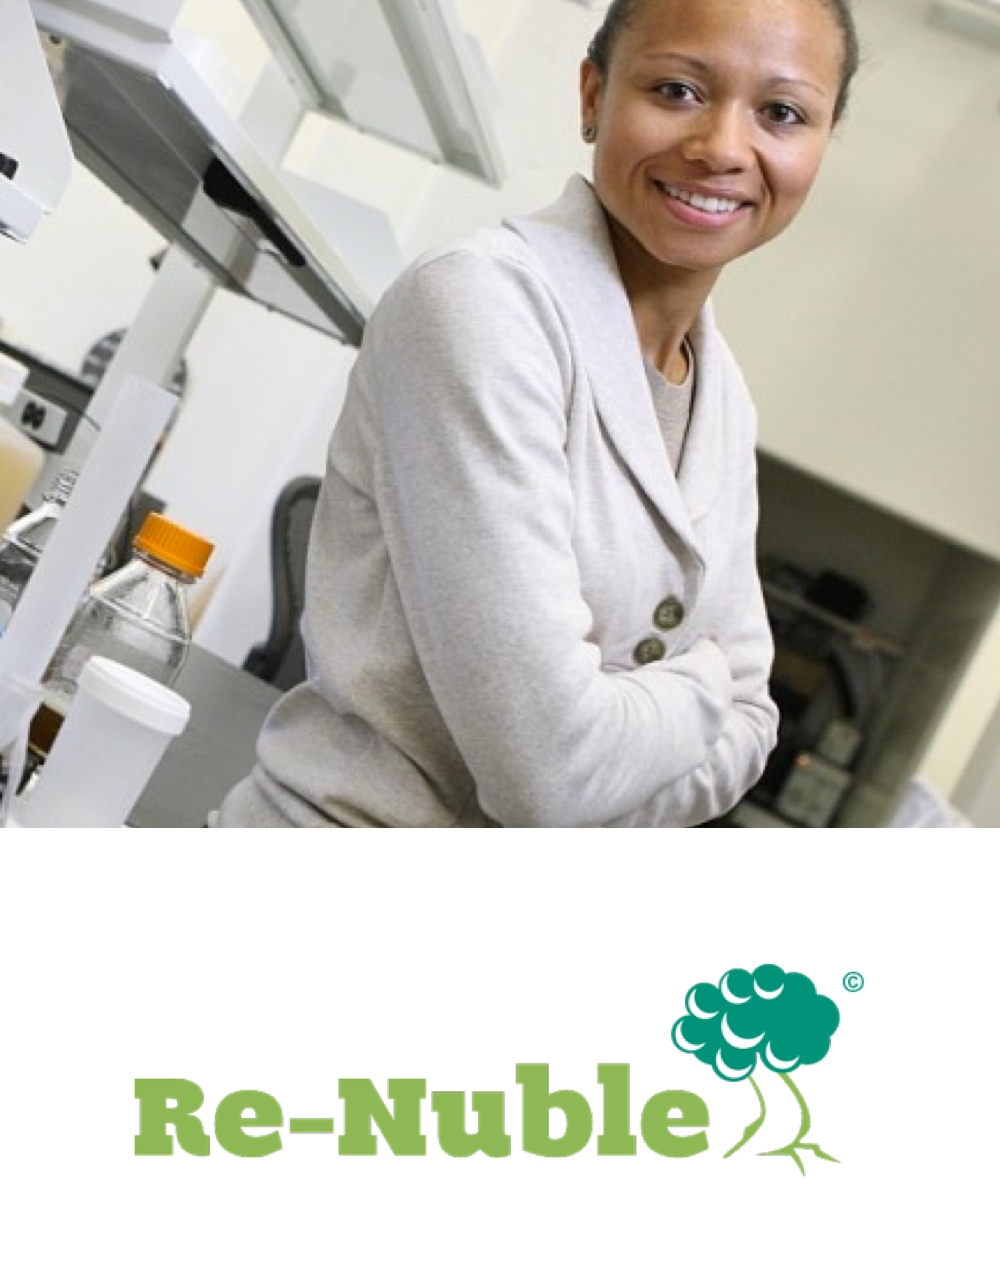 Re-Nuble's vision is to create closed loop agriculture systems throughout America and the world in which food waste does not exist, chemical additives have no place in our food, and farmers and growers feed their local communities, not landfills. -